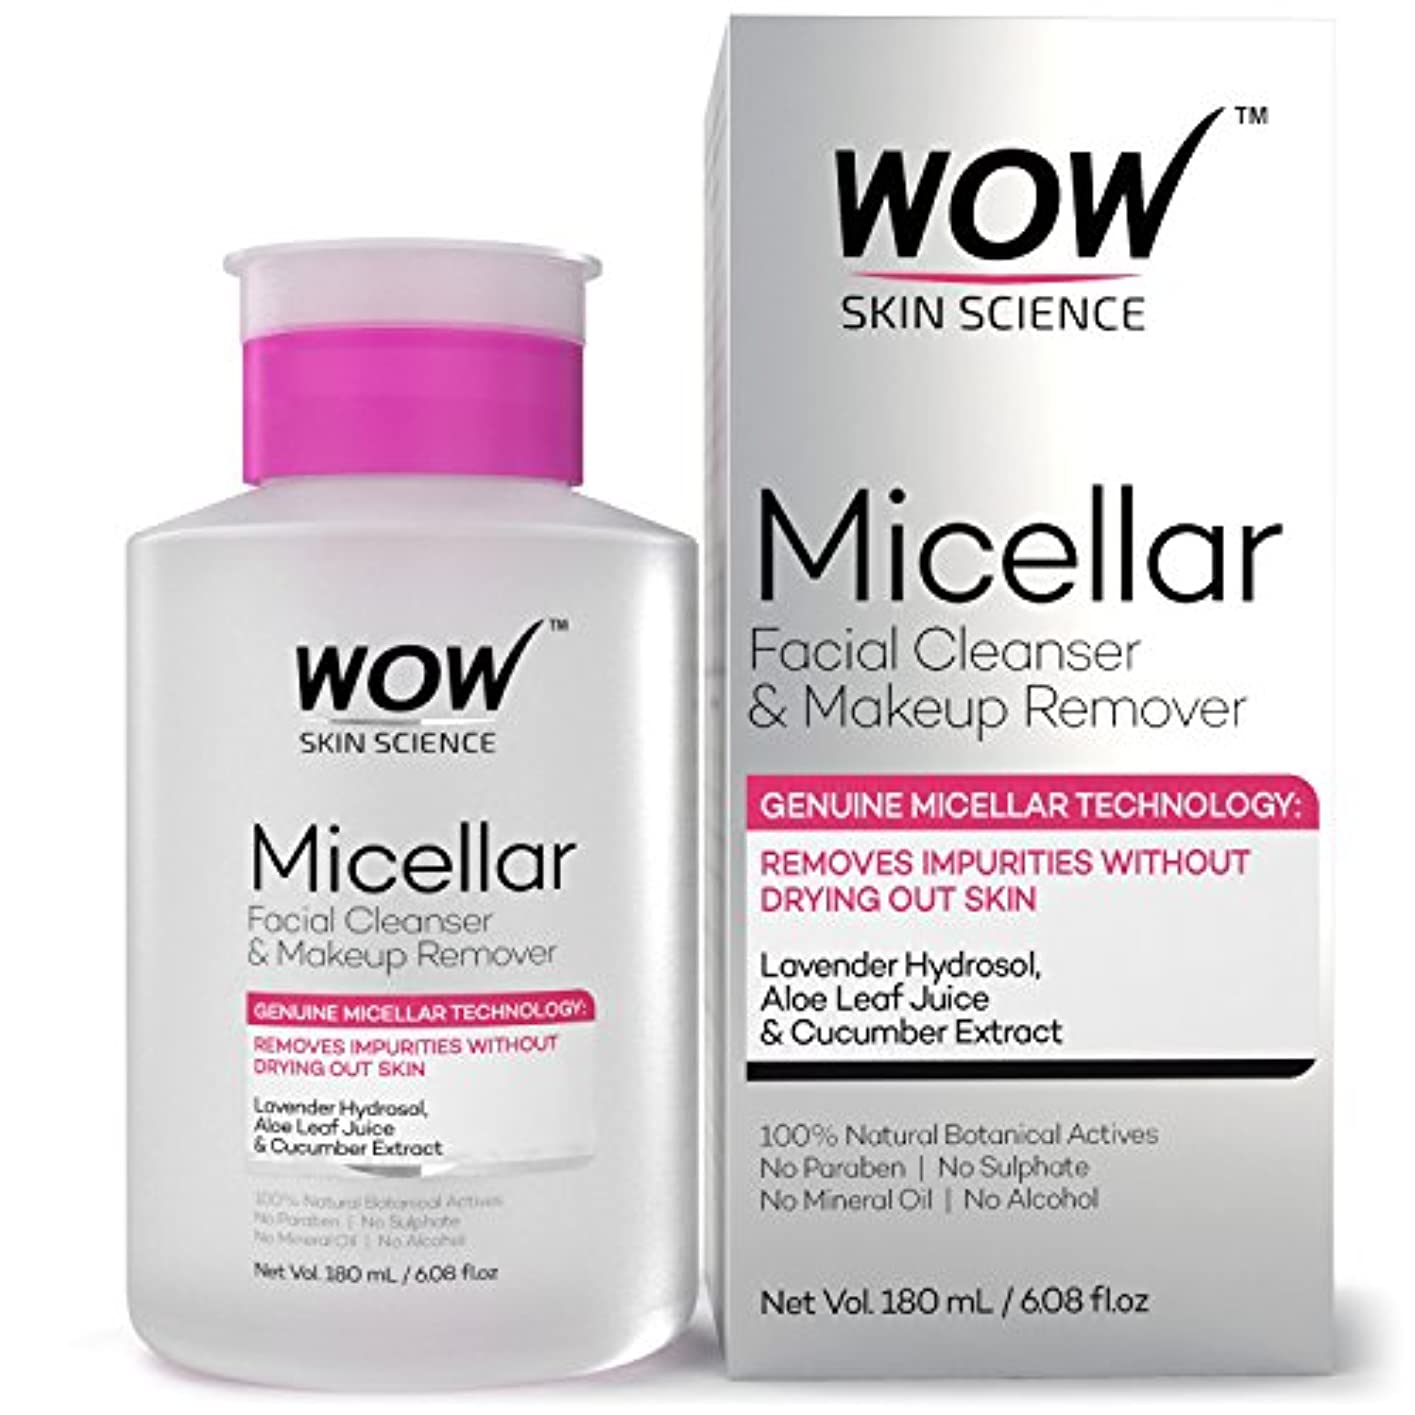 オープニング揮発性サンプルWOW Micellar Facial Cleanser & Make Up Remover No Parabens, Sulphates, Mineral Oil, Alcohol & Synthetic Fragrance...